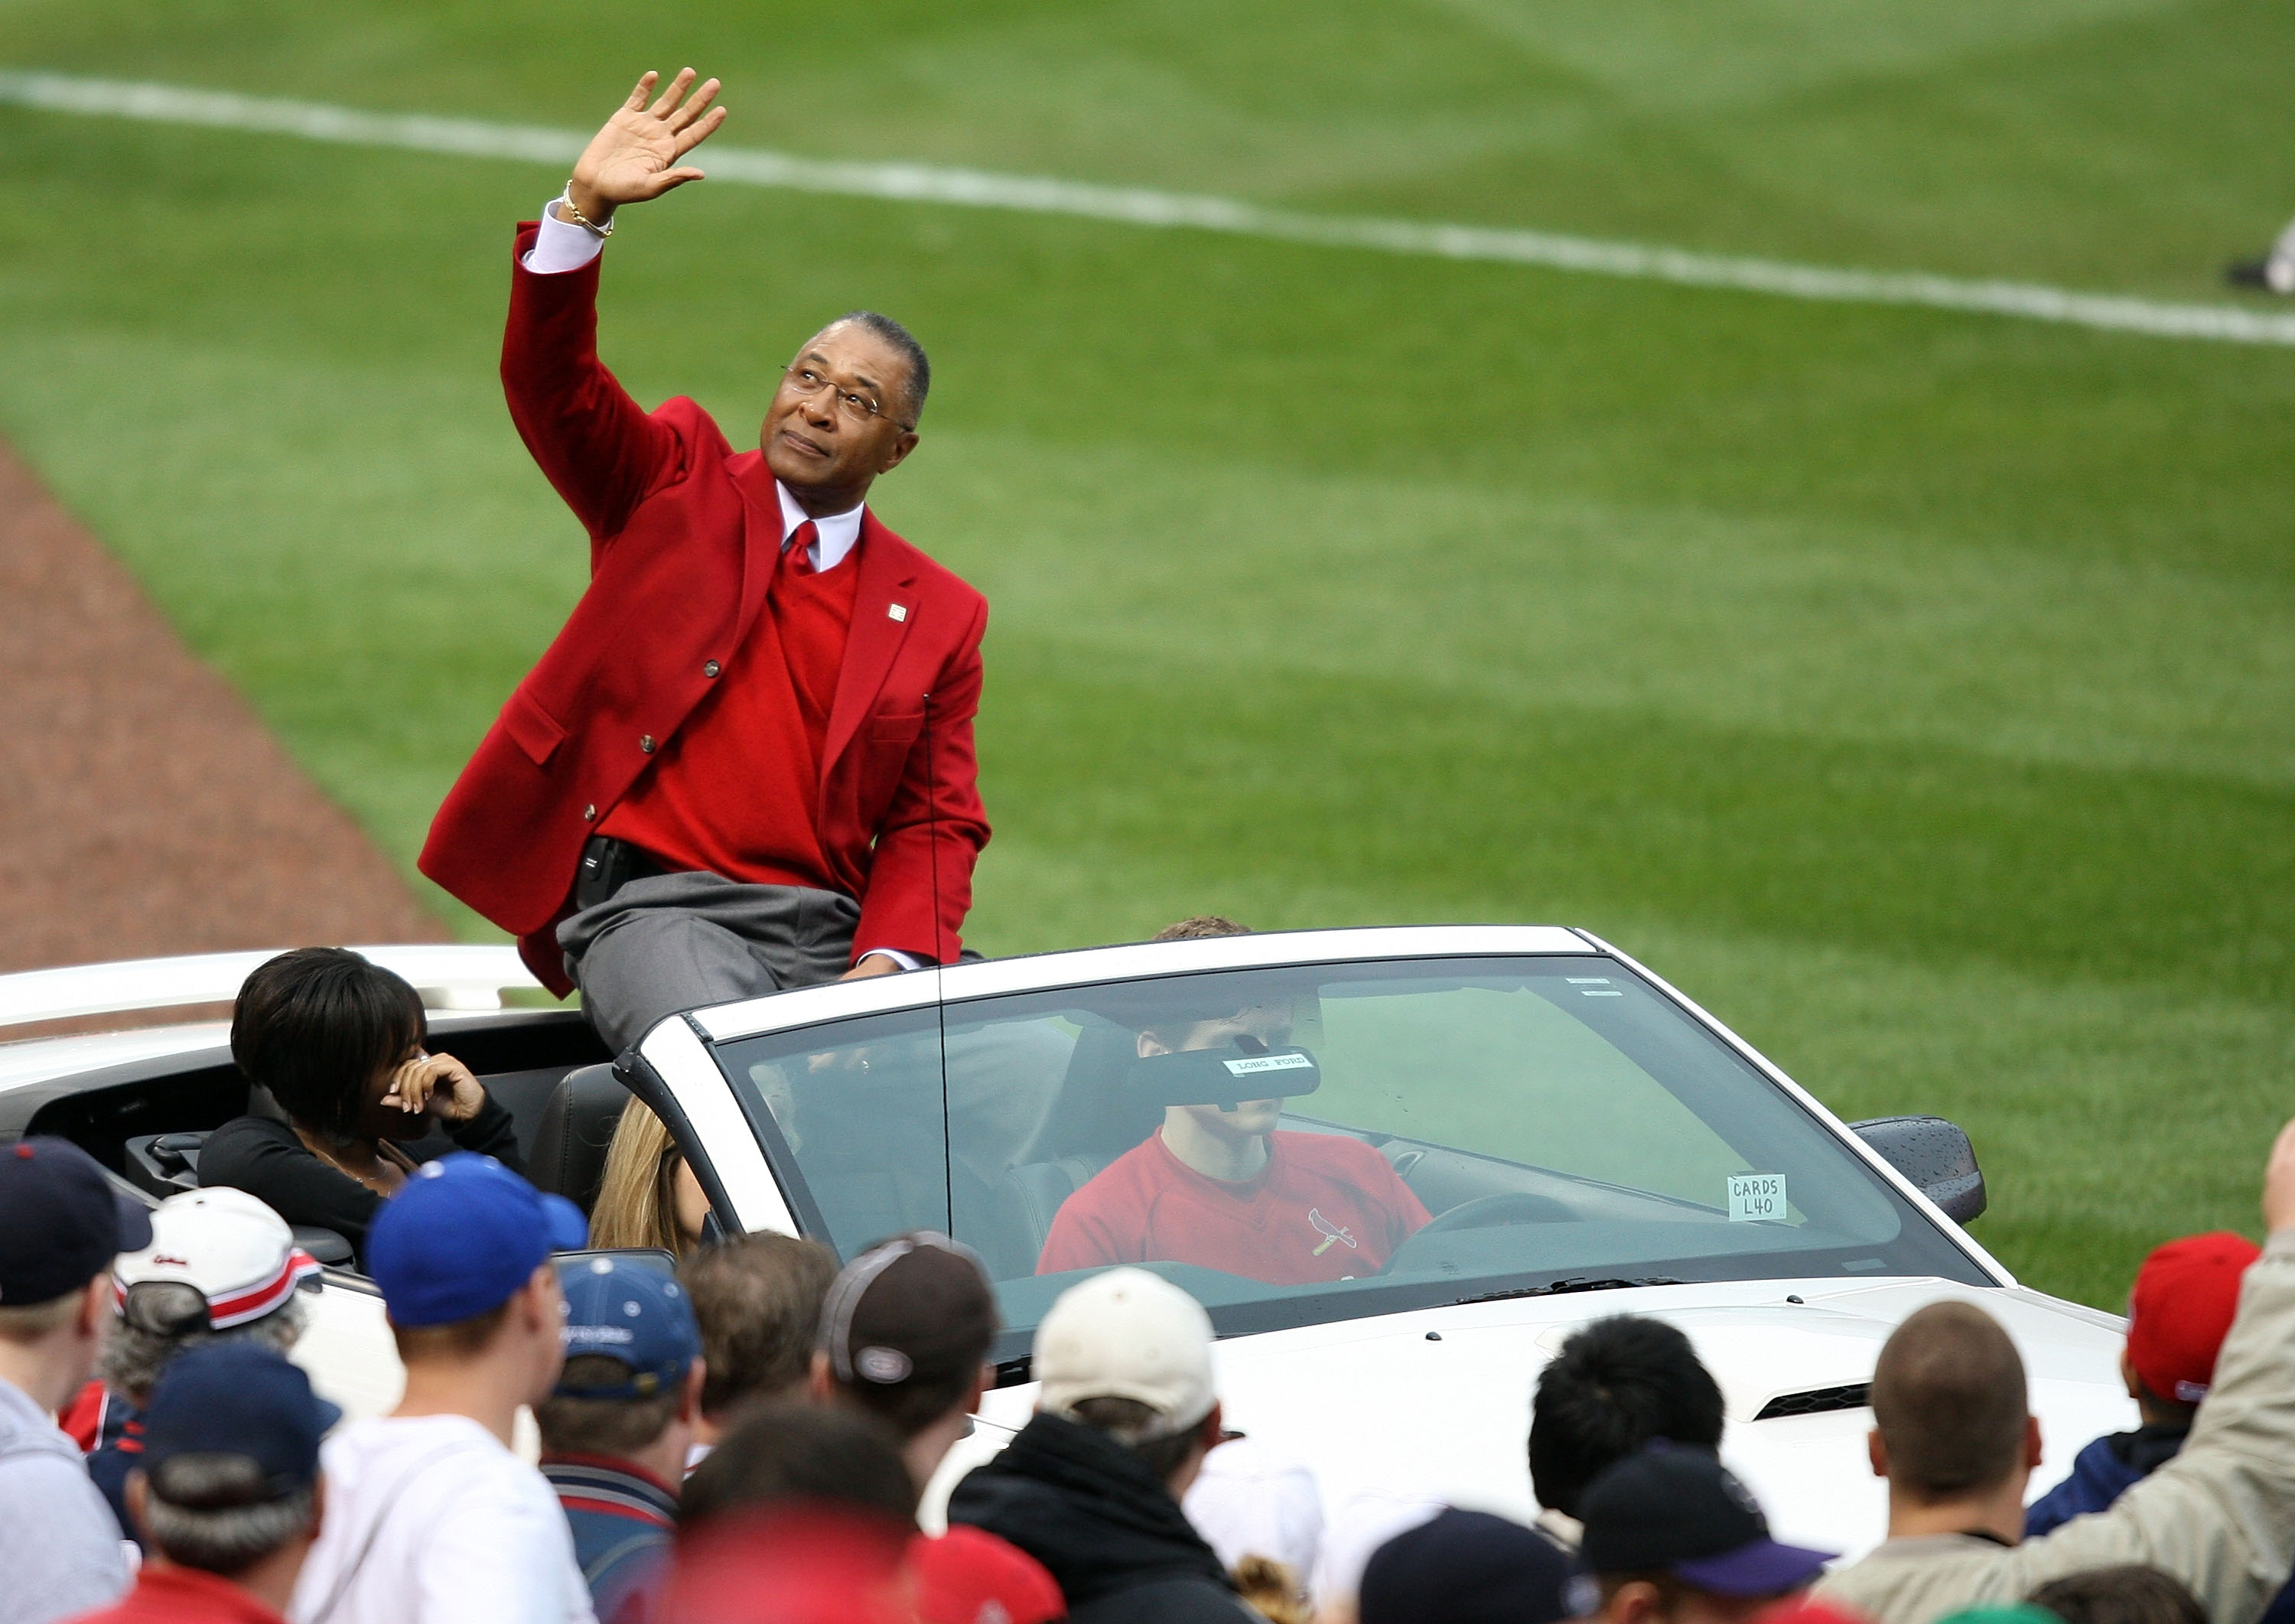 ST. LOUIS - MARCH 31:  Former St. Louis Cardinals shortstop Ozzie Smith waves to fans during the opening ceremony before the Cardinals were to take on the Colorado Rockies on opening day at Busch Stadium March 31, 2008 in St. Louis, Missouri.  (Photo by E